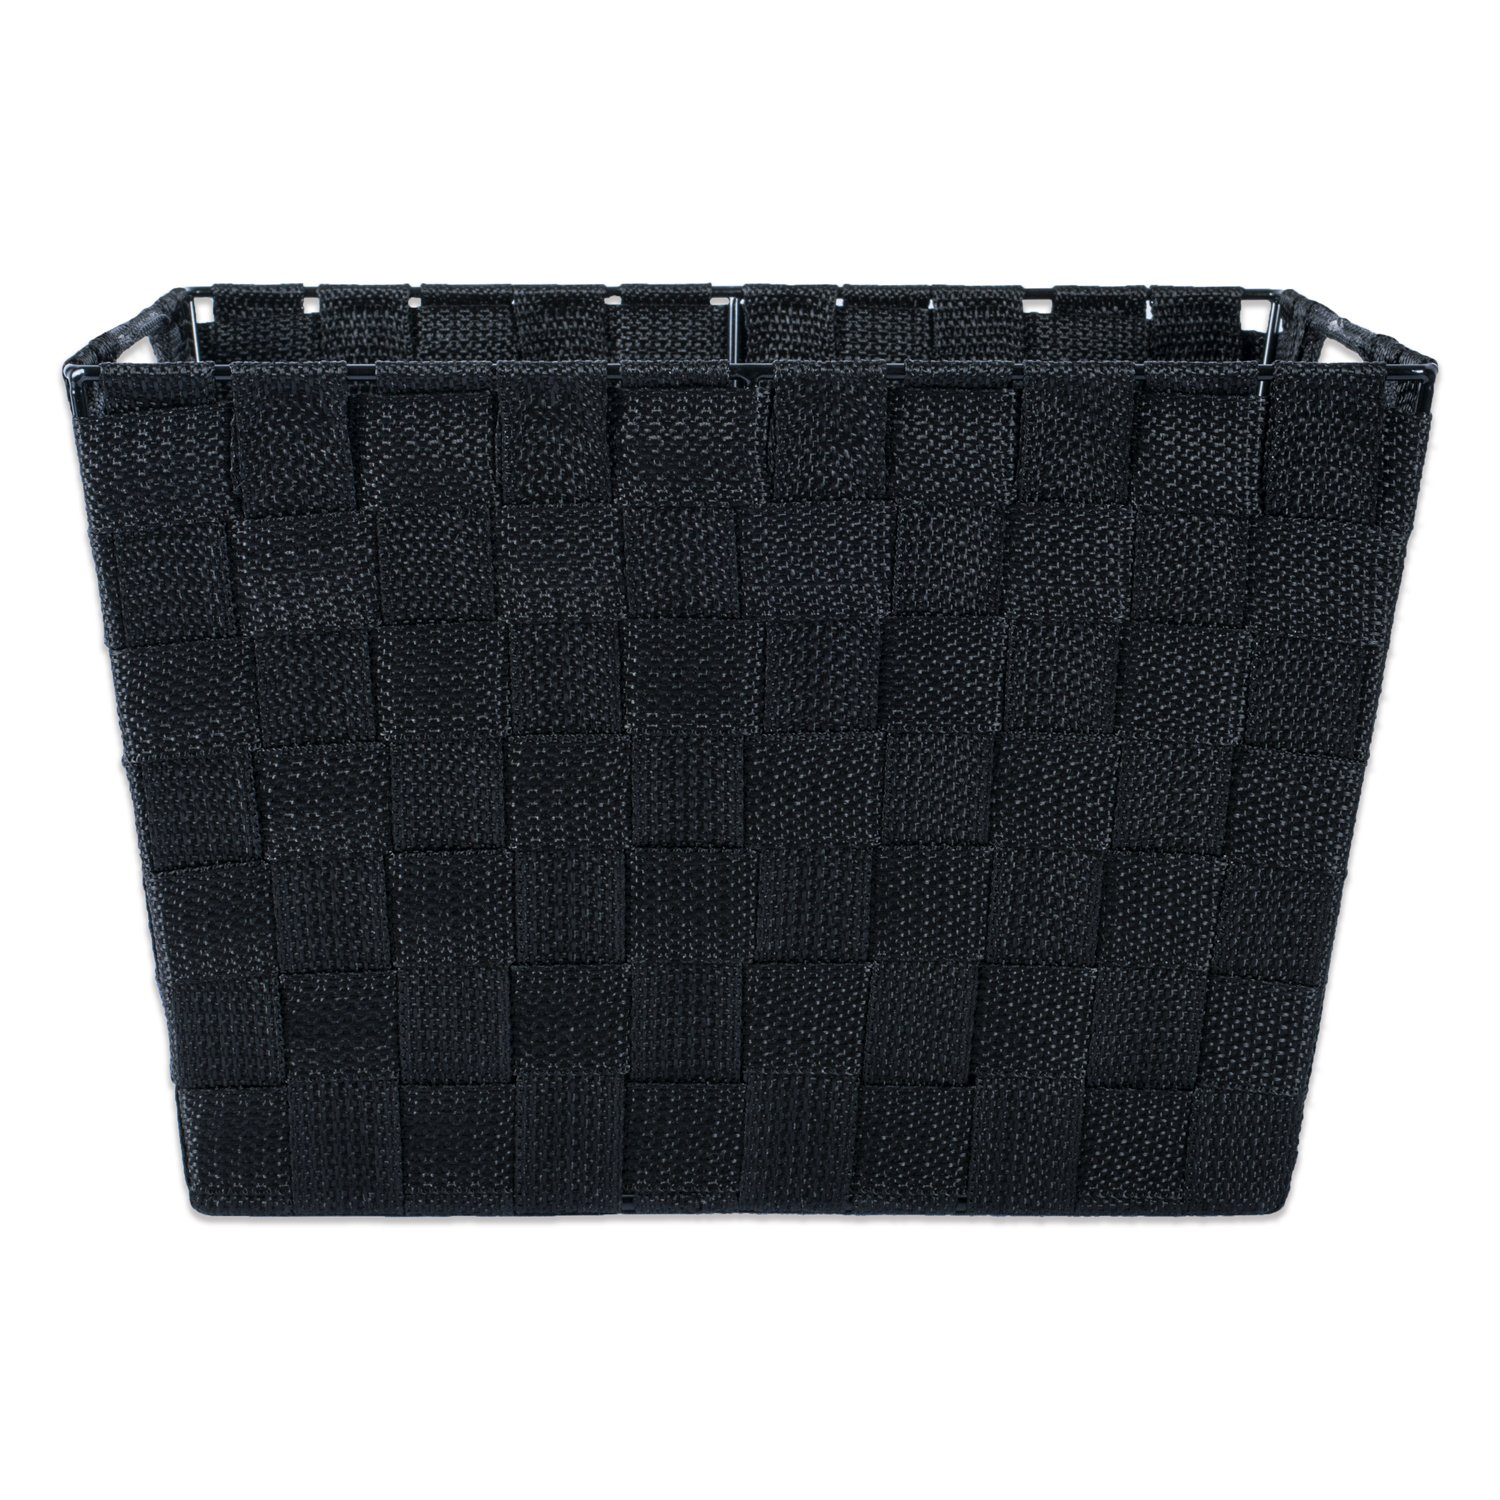 DII Durable Trapezoid Woven Nylon Storage Bin or Basket for Organizing Your Home or Closets Office Large Basket-13x15x10 Black-Set of 2